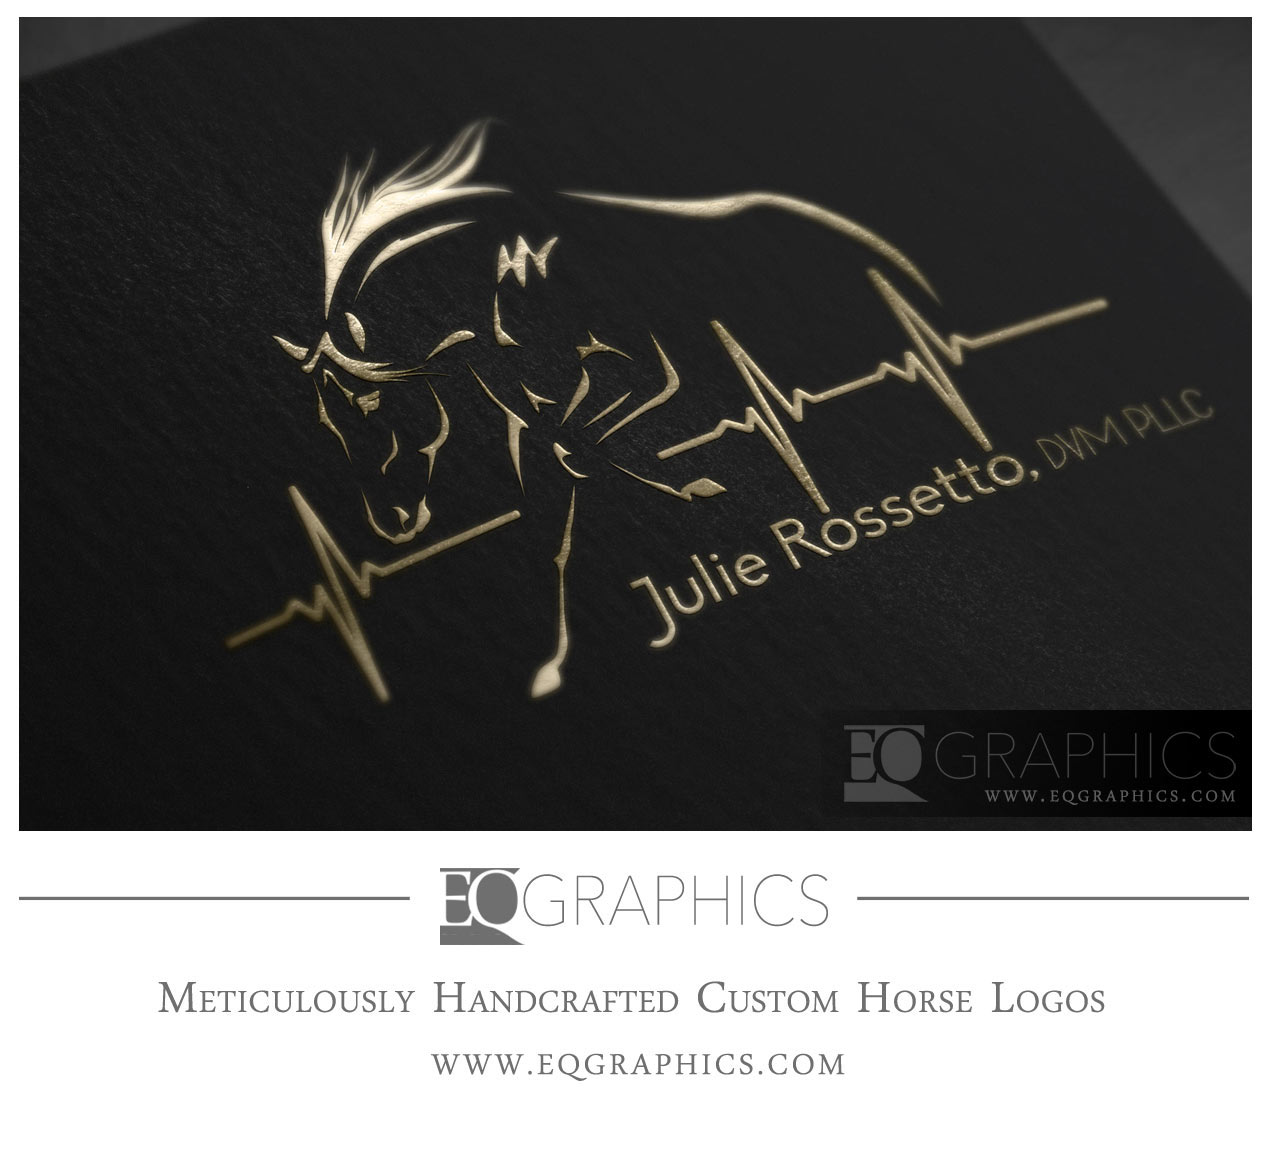 Rossetto Veterinarian Horse Logo Design by EQ Graphics Equine Logos